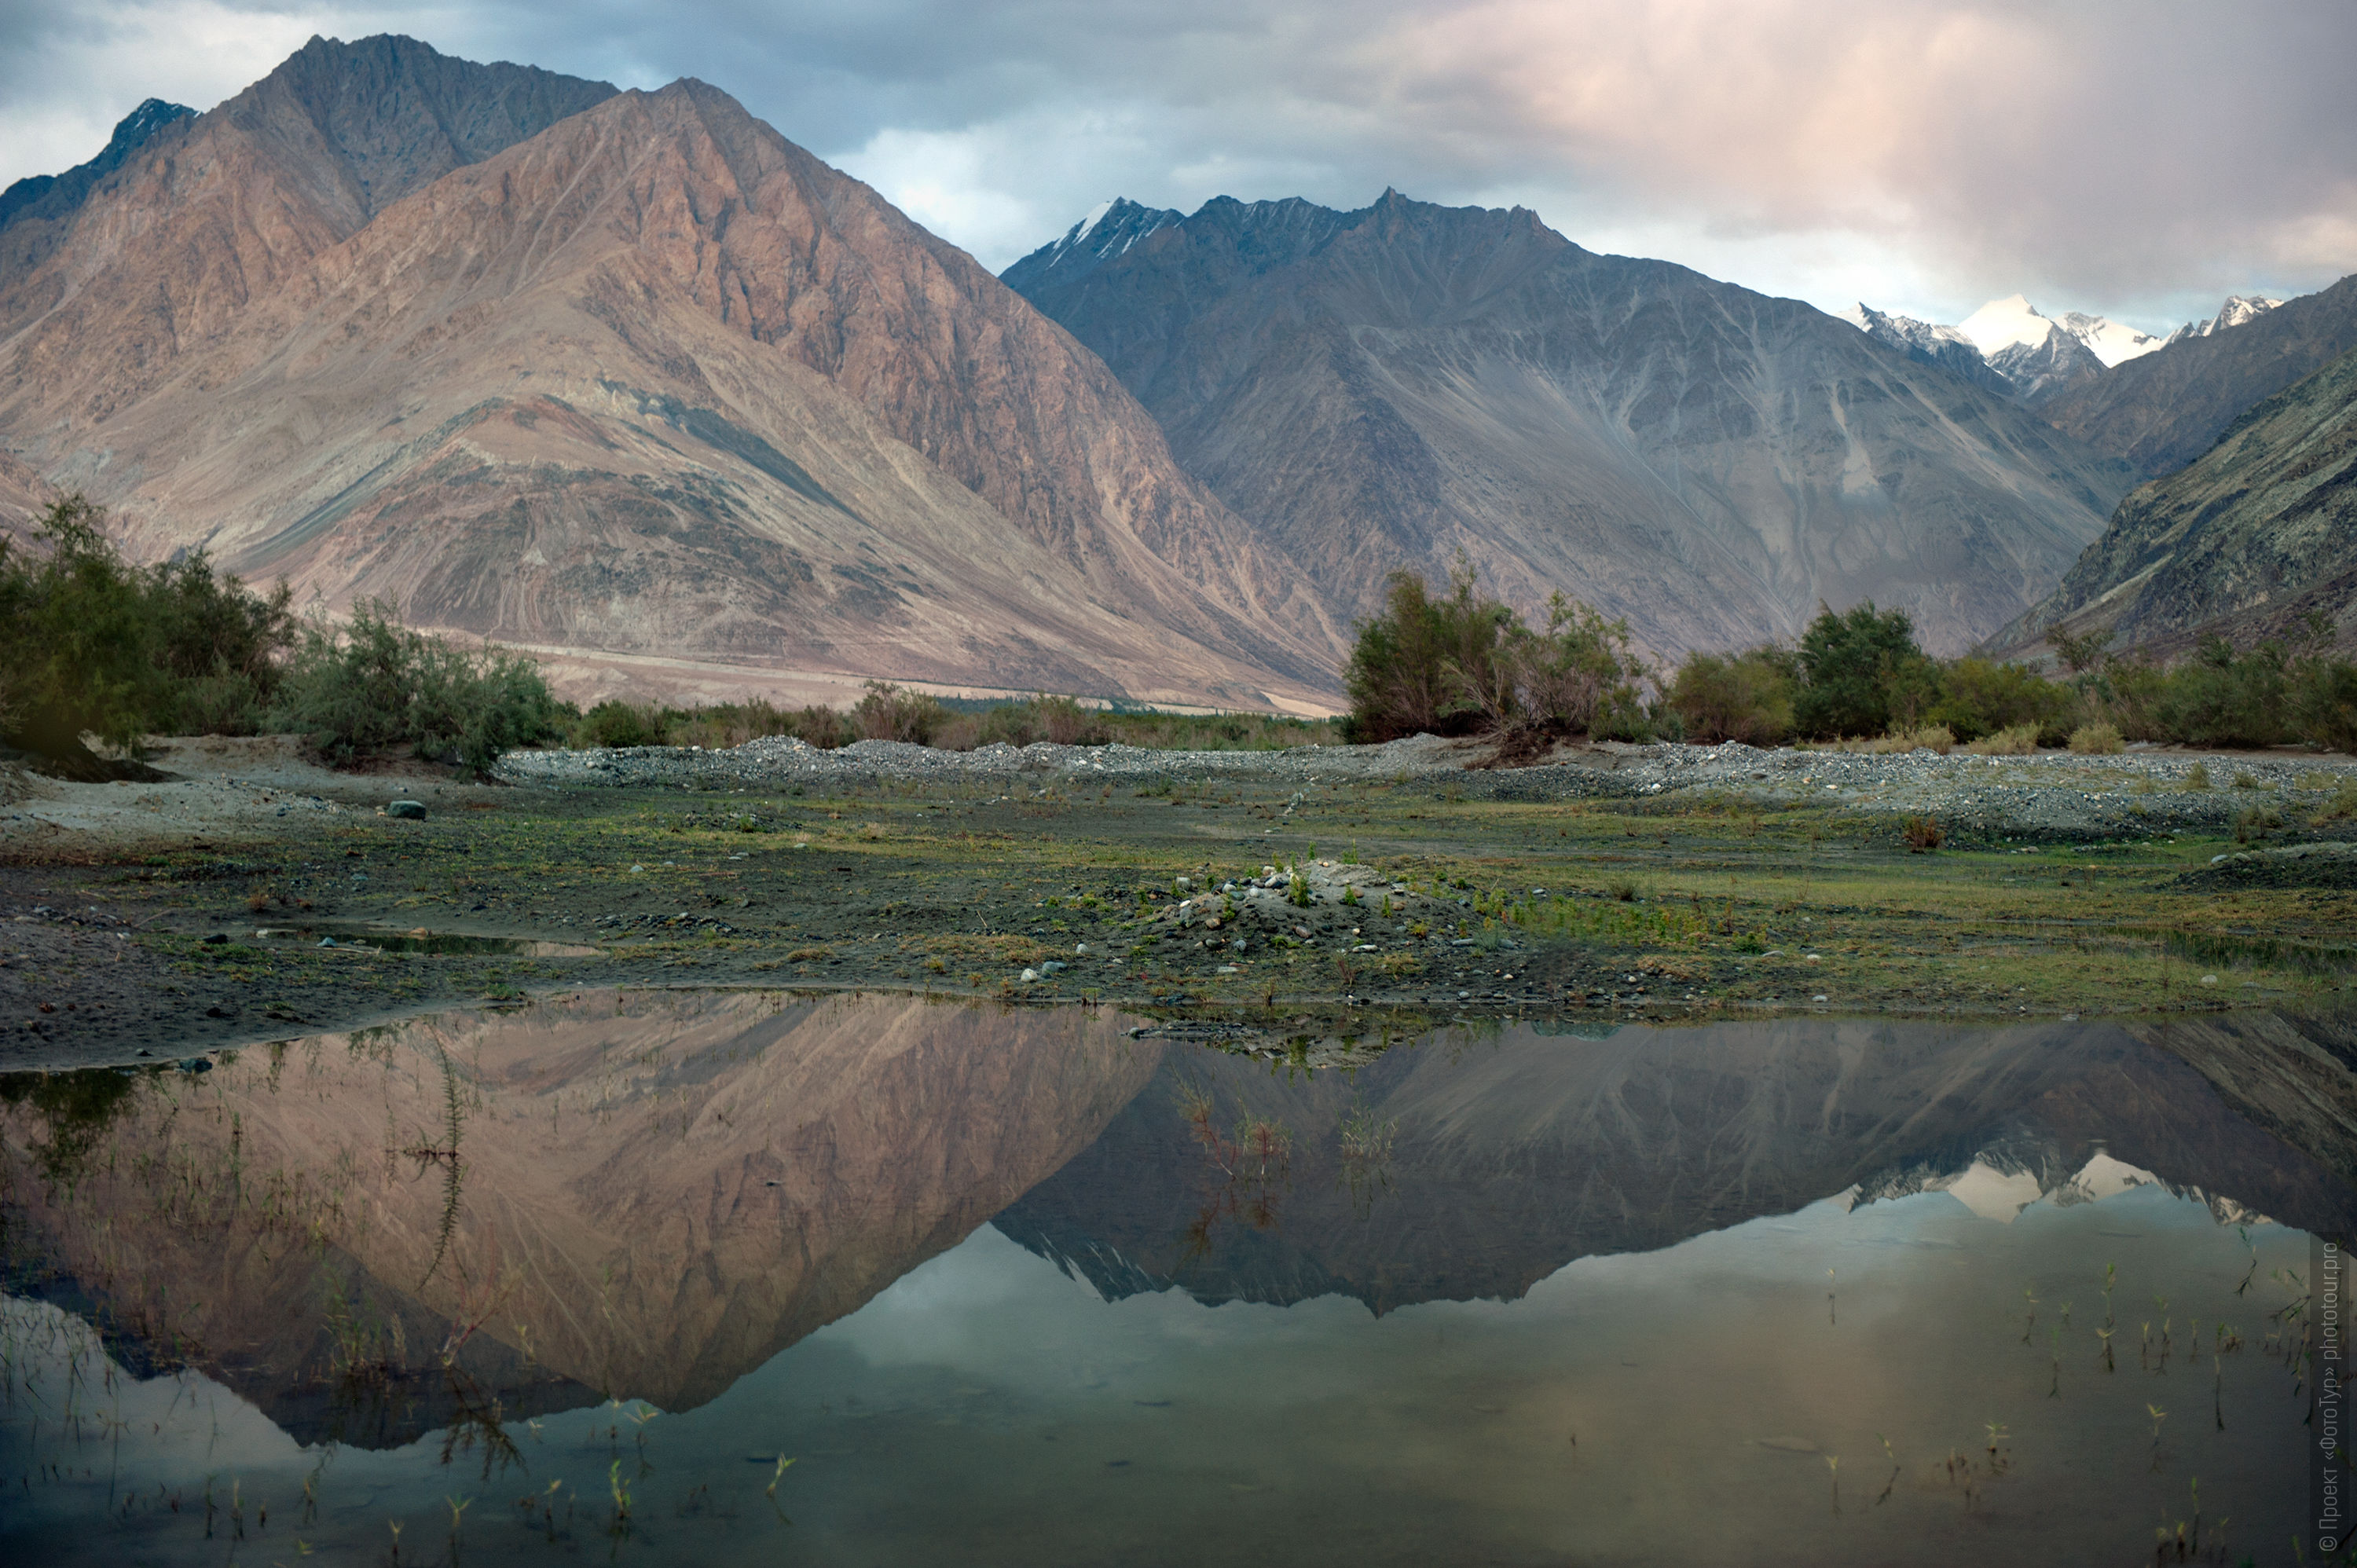 Evening photography in Nubra Valley, Ladakh. Photo tour in Nubra valley, October 2017.